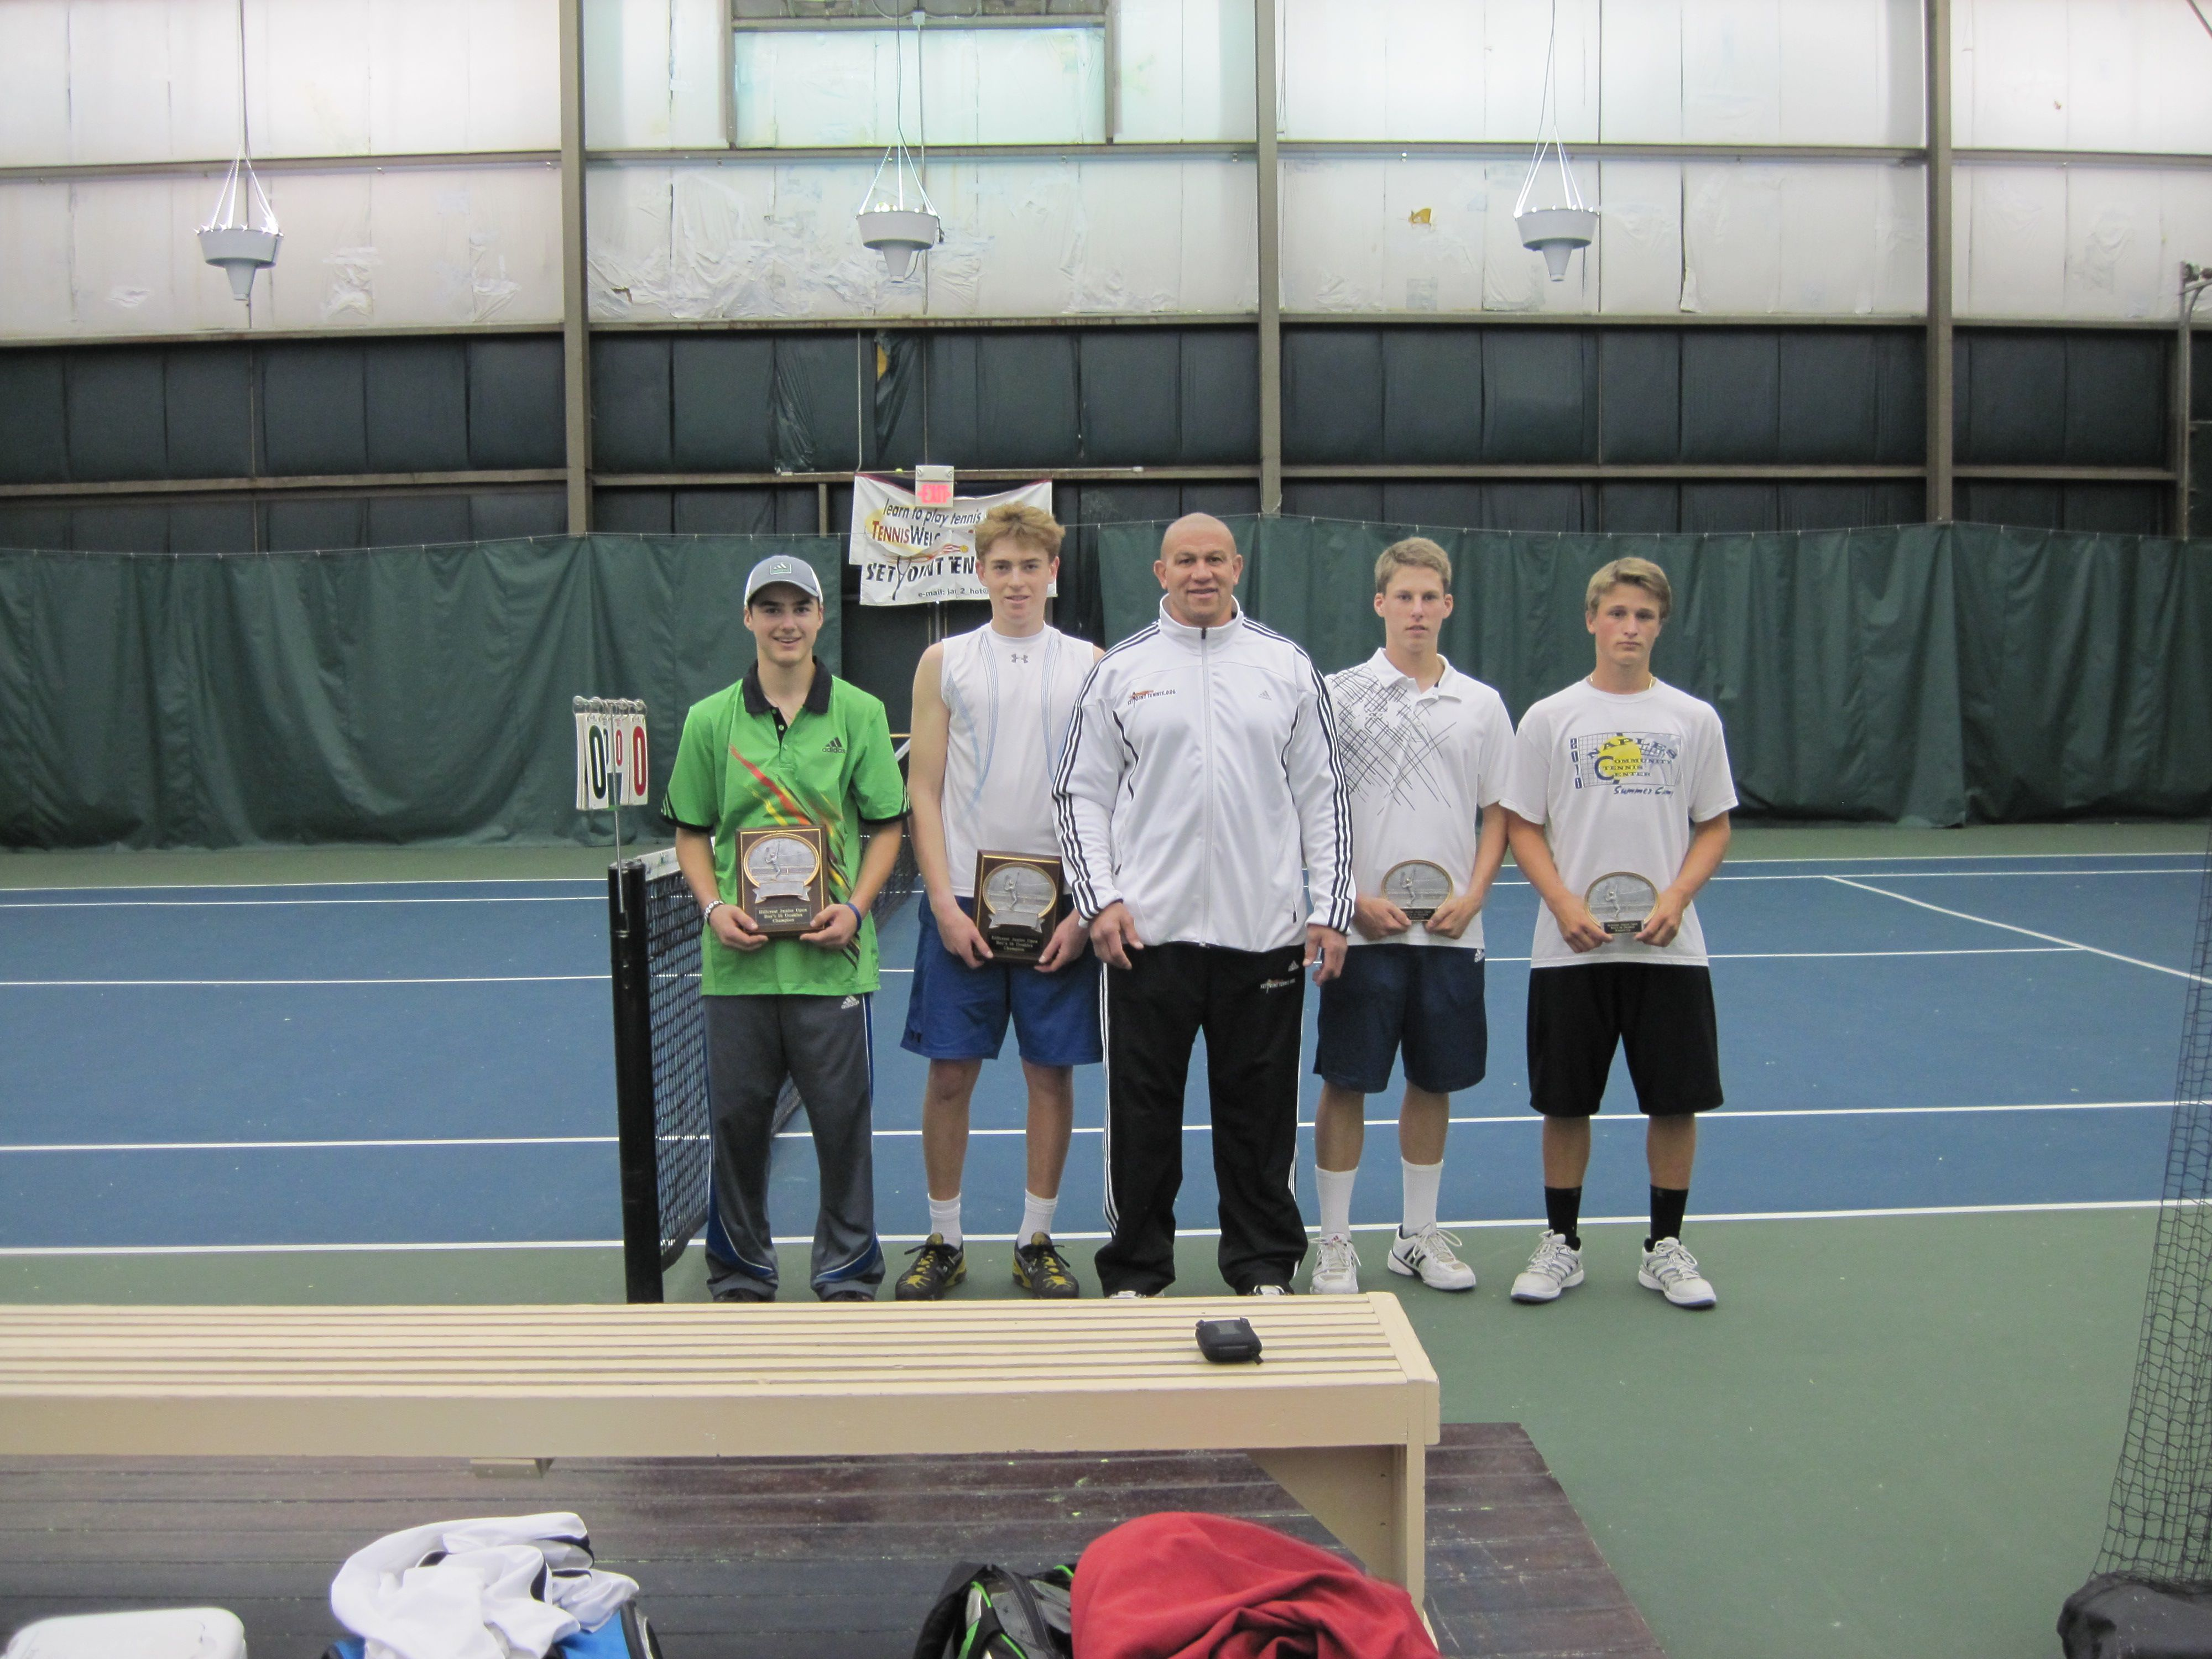 Boys 16 Level 4 Tennis Tournament Doubles Champions and Runner-ups